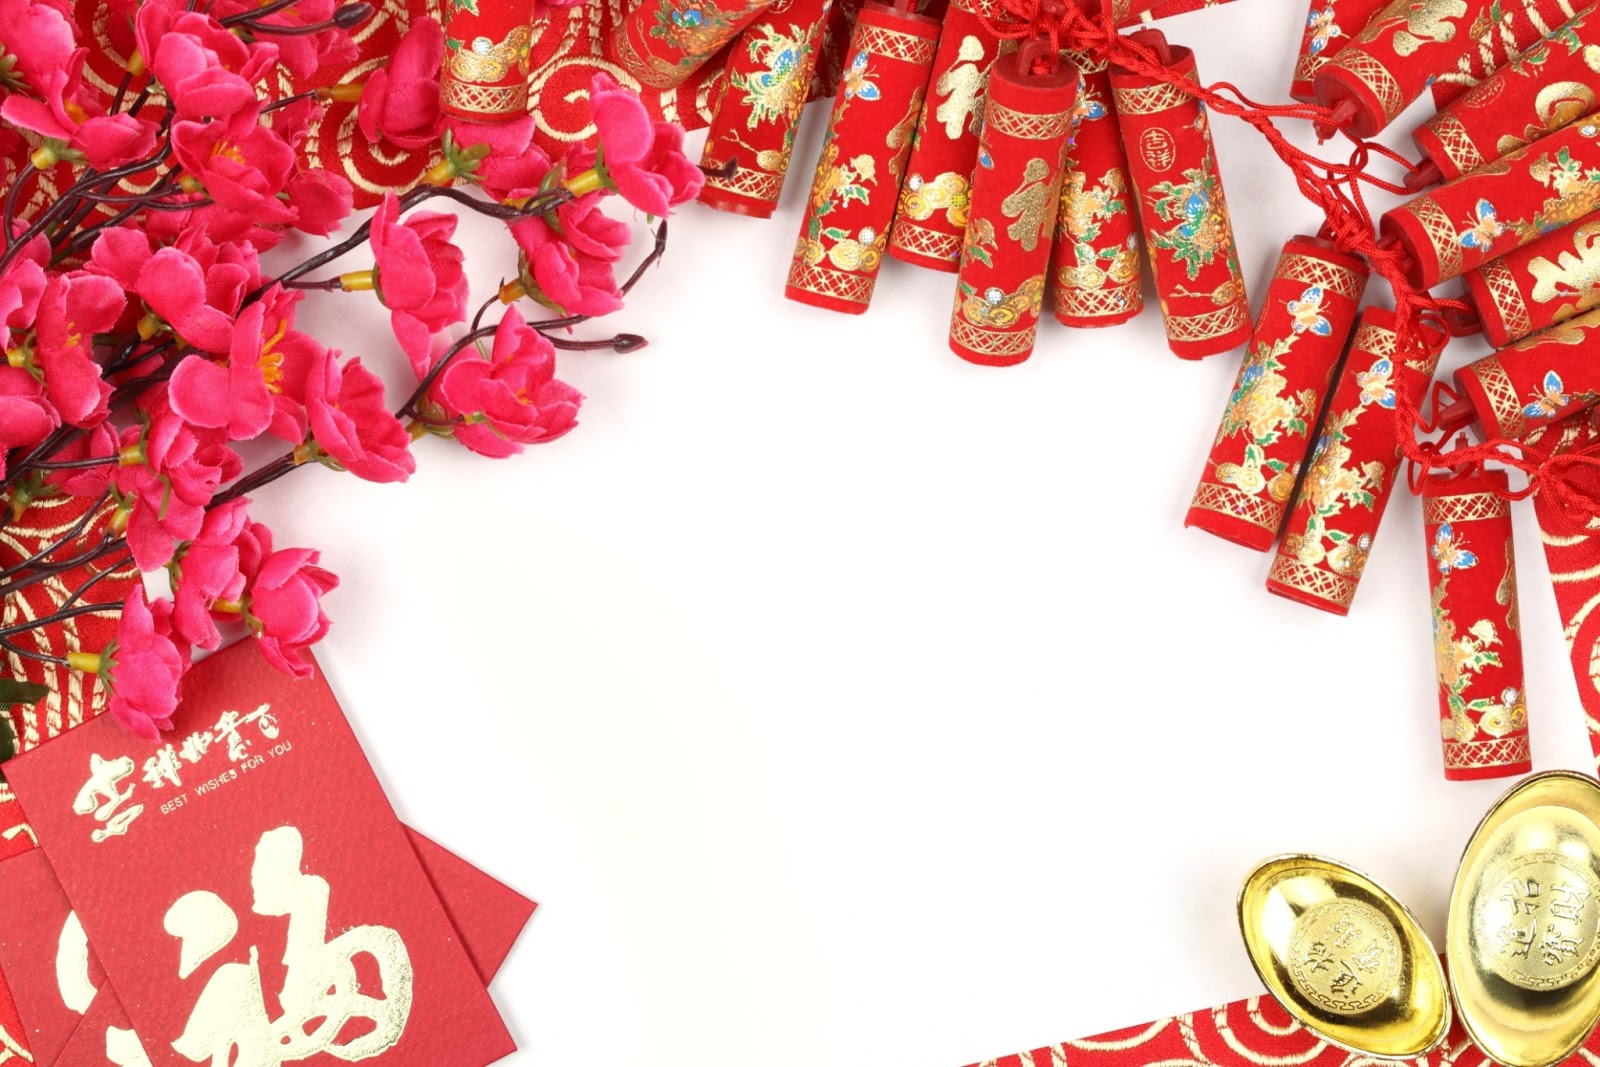 HD Widescreen Backgrounds, Lunar New Year - 1600x1067, Foster Ciccone